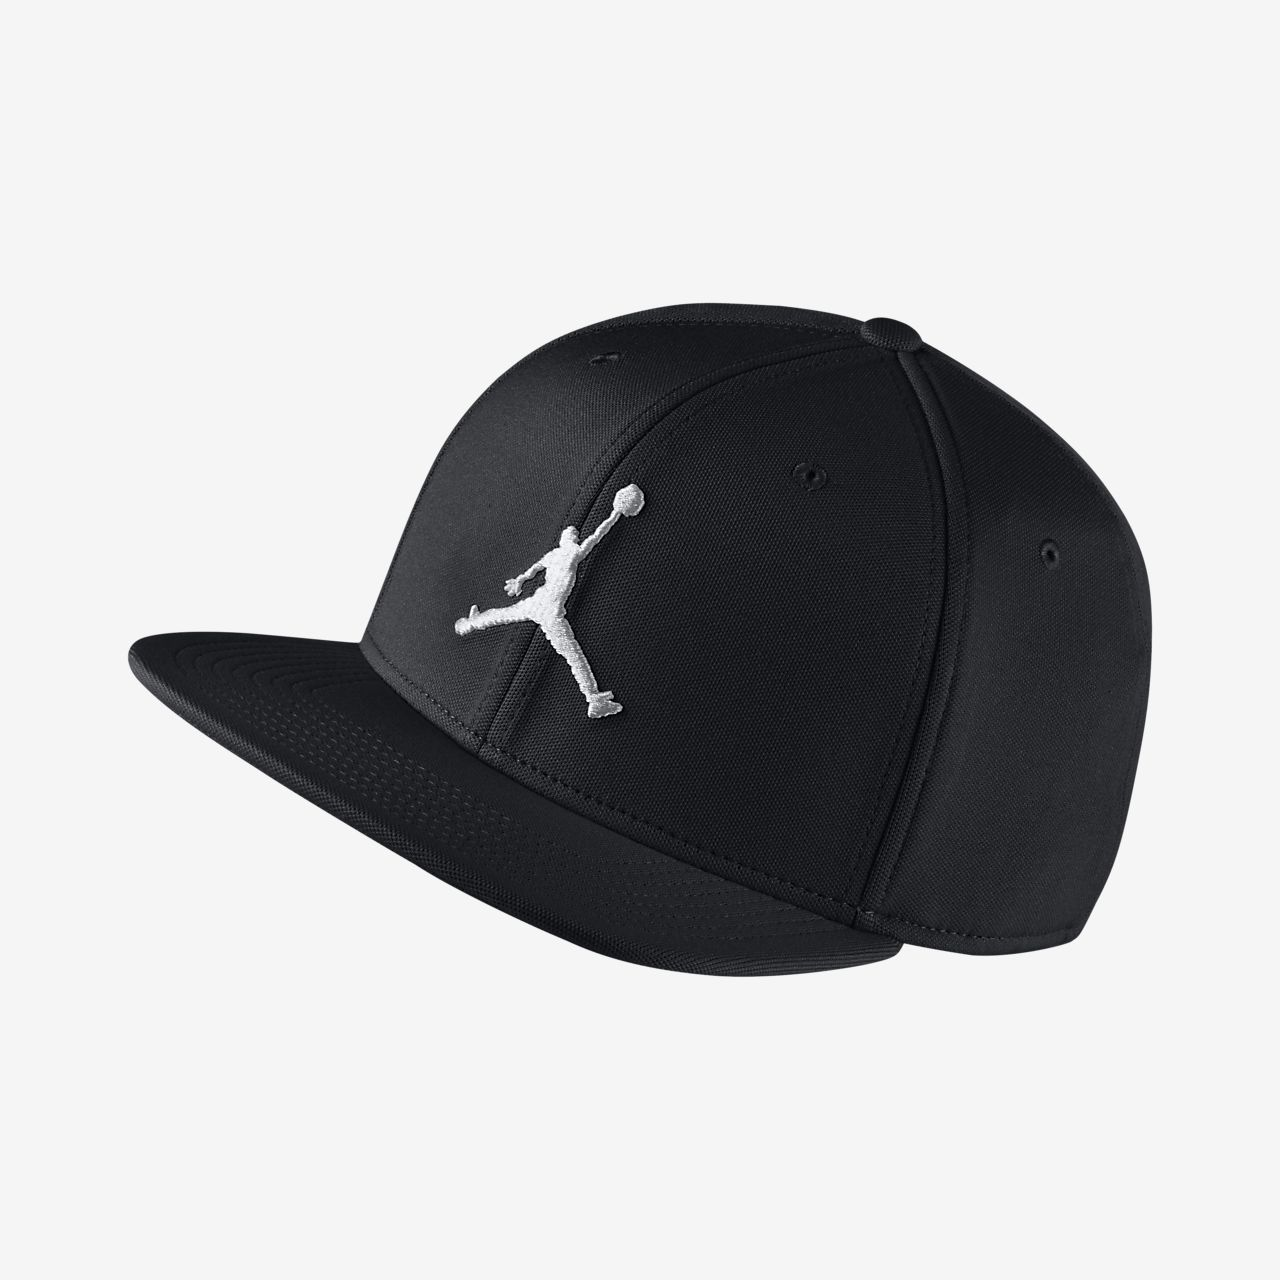 9ad13cf2fbca8 Low Resolution Gorro ajustable Jordan Jumpman Snapback Gorro ajustable  Jordan Jumpman Snapback